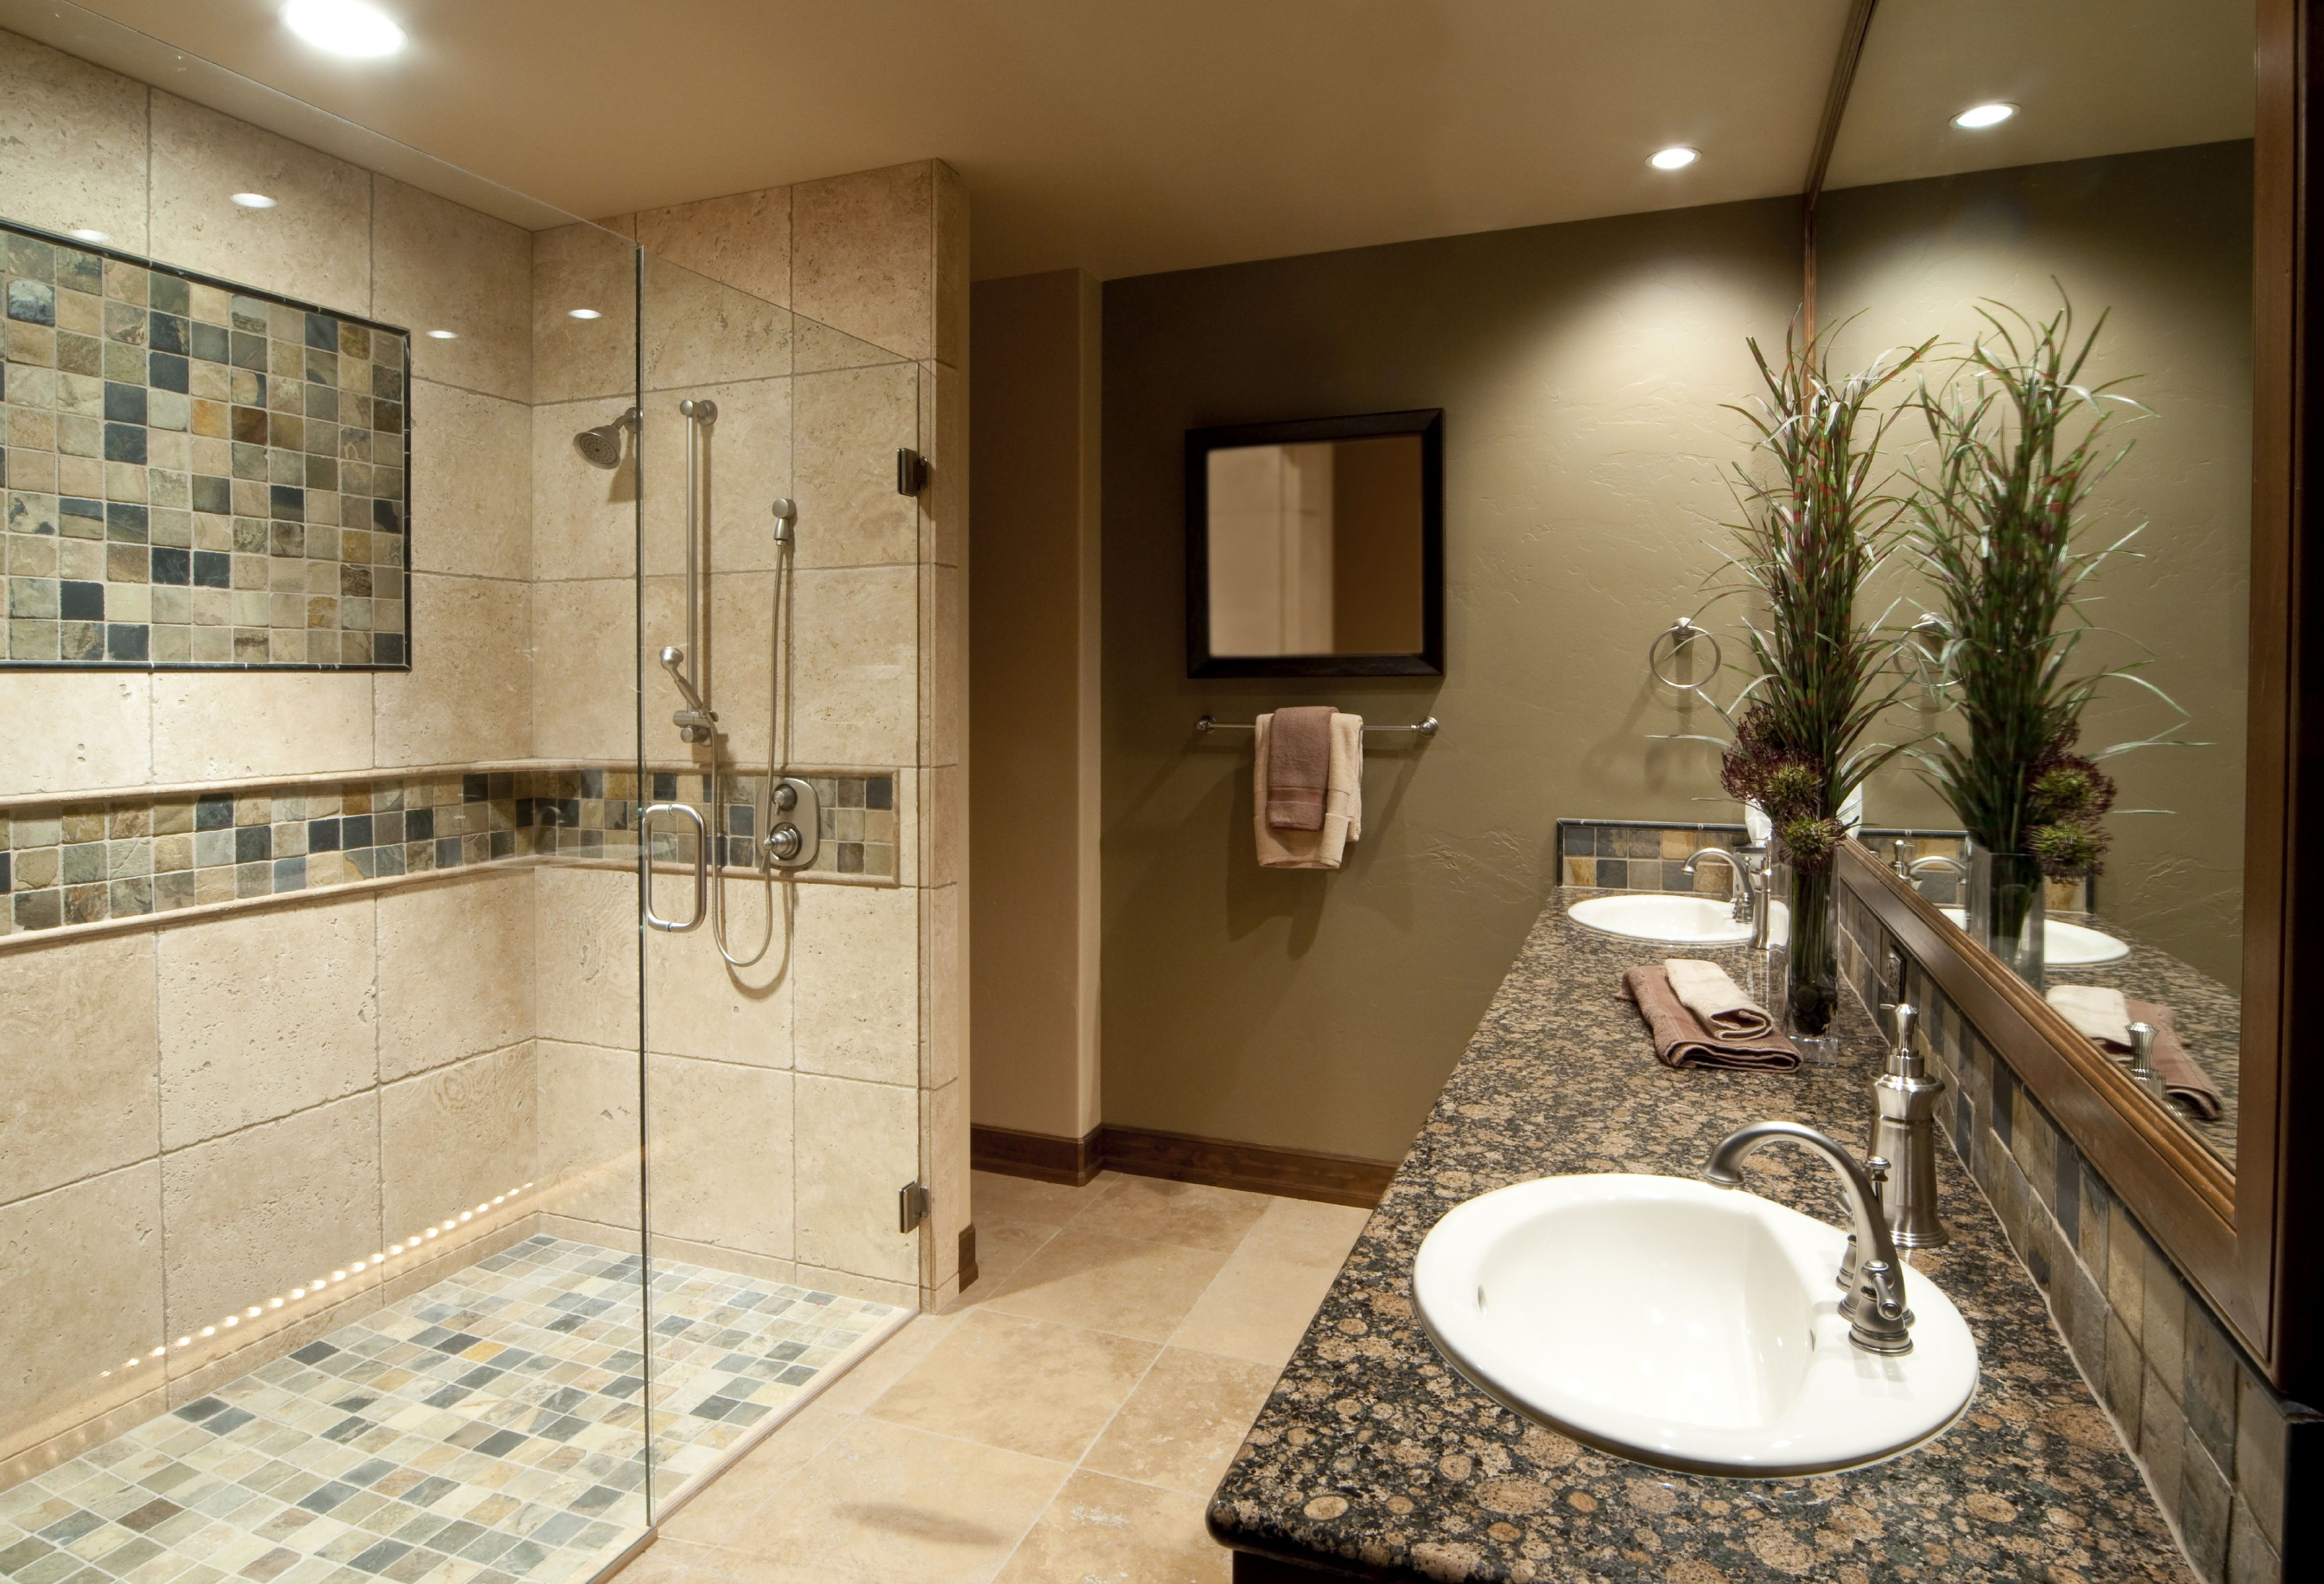 Bright Lamp above Appealing Tile Shower Ideas near Glass Wall and Door inside Simple Bathroom